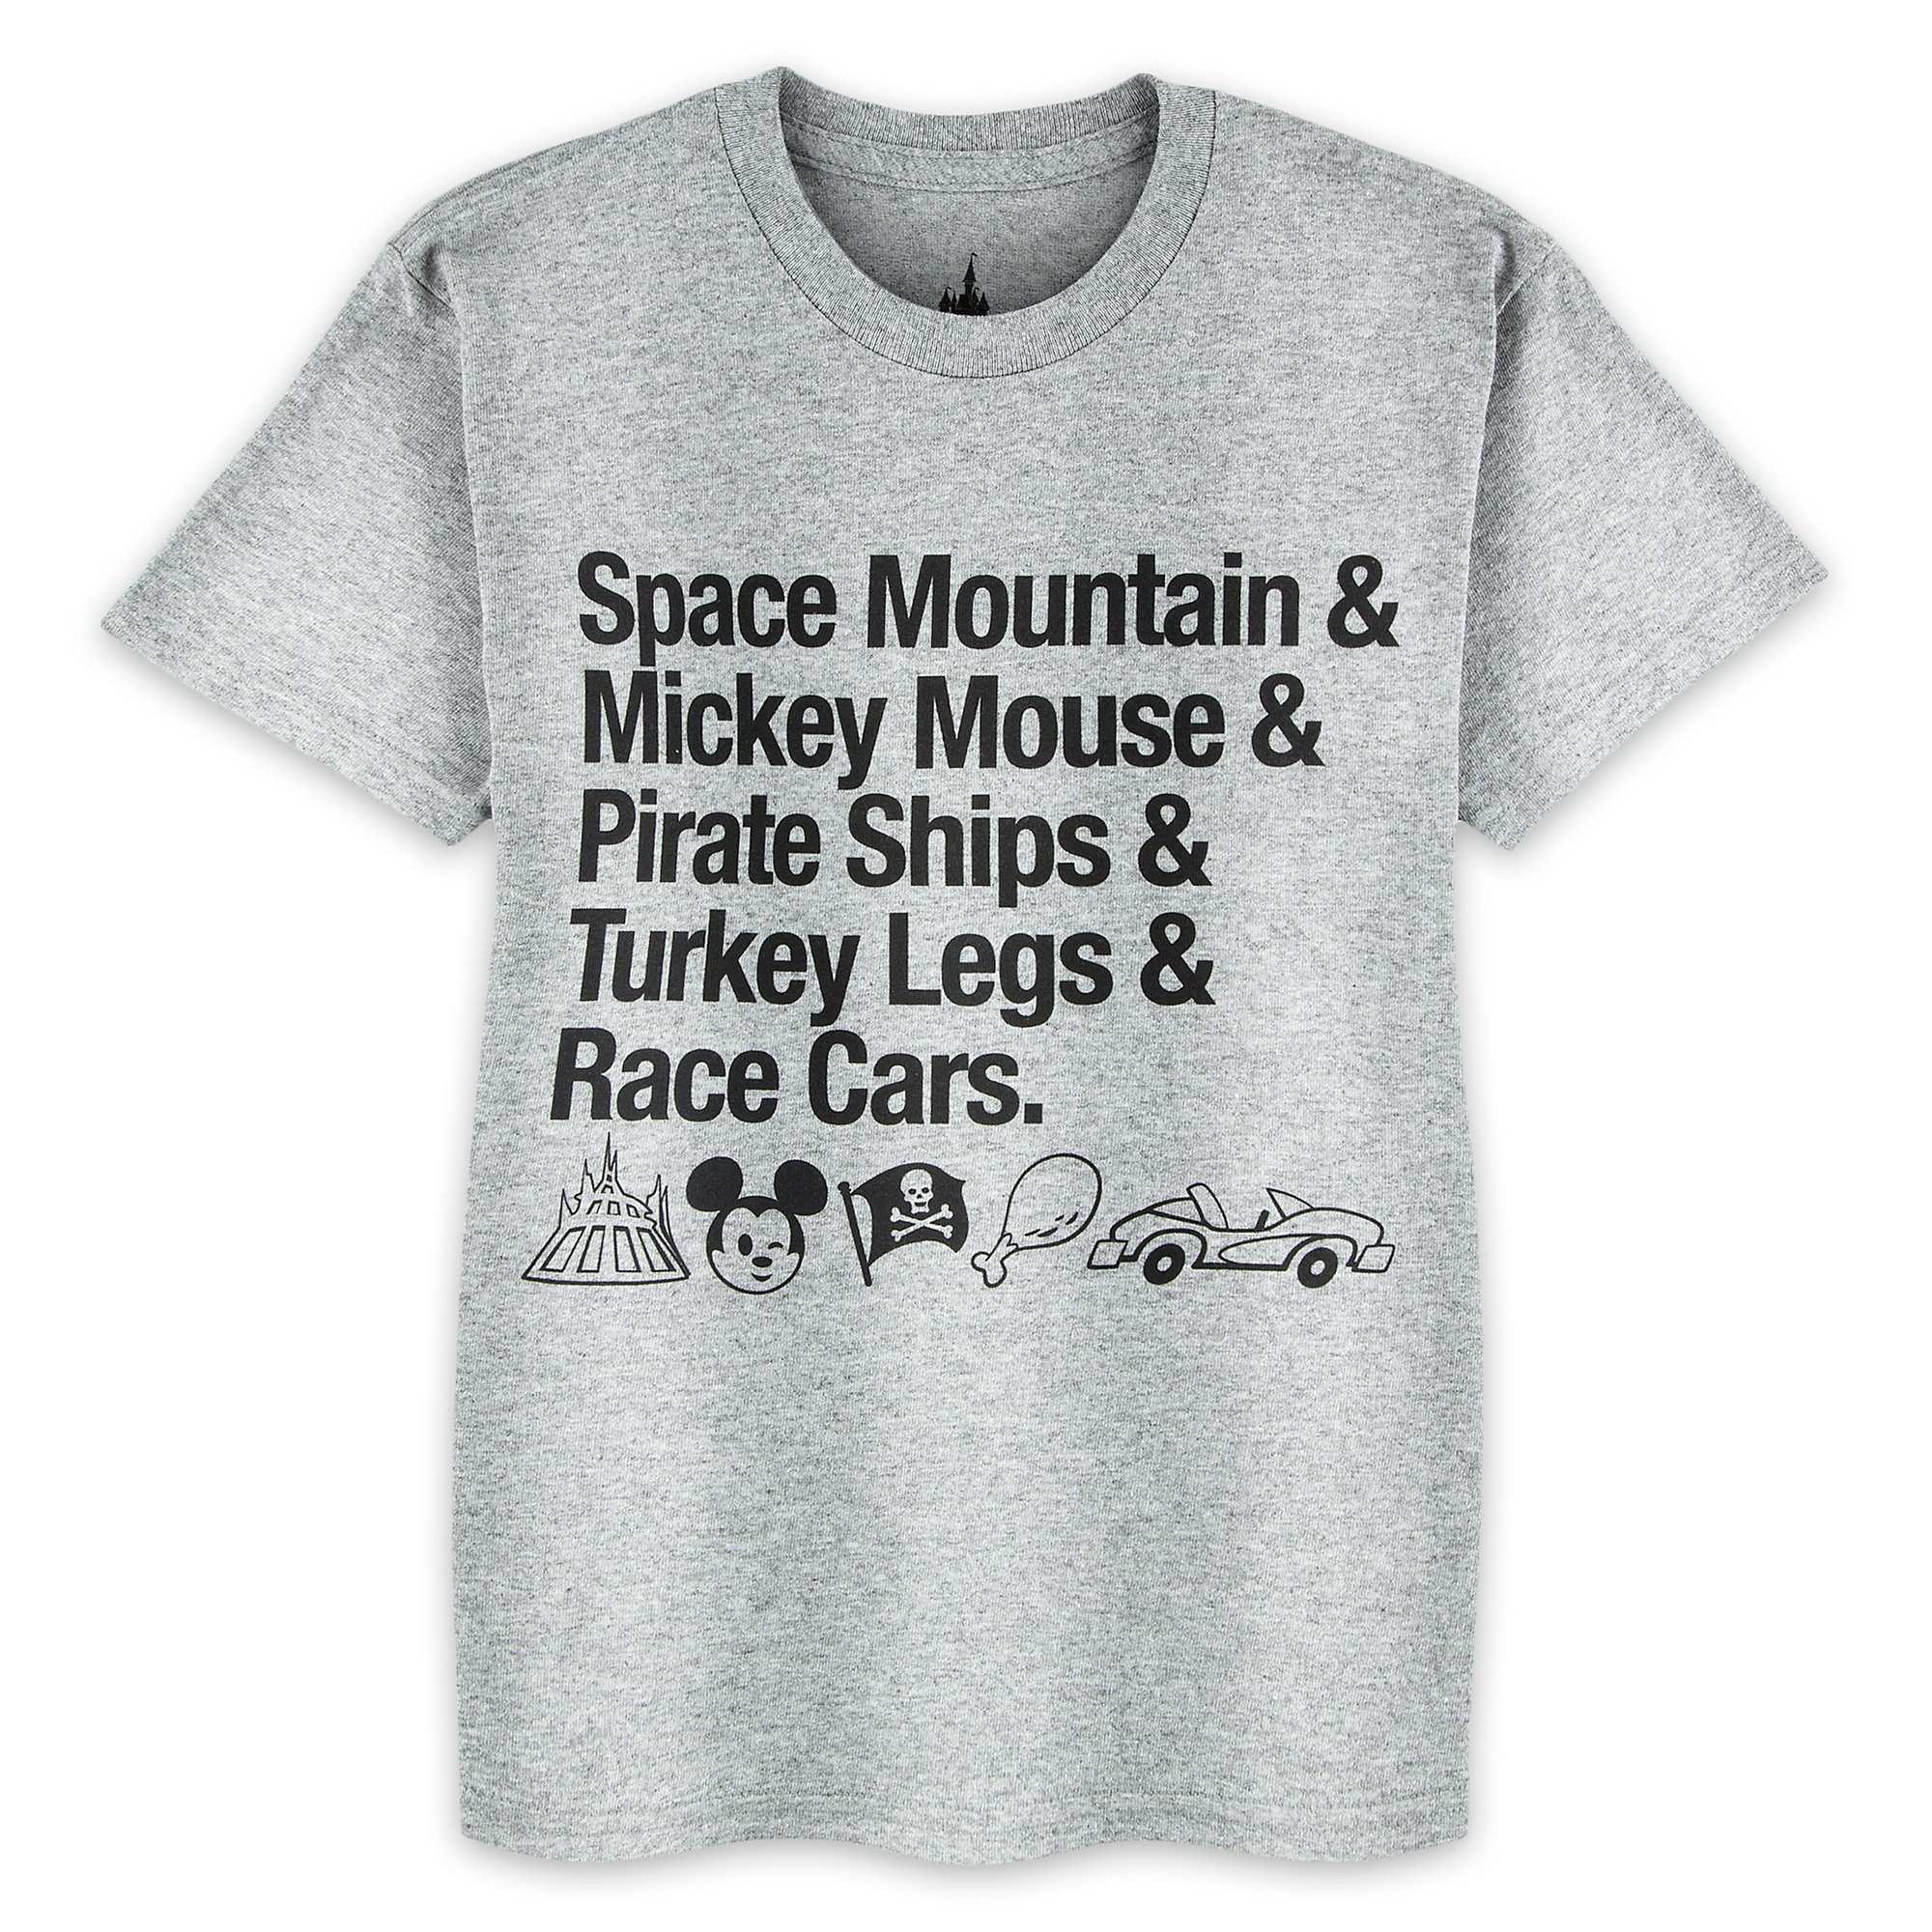 Disney Parks Attractions T-Shirt for Kids